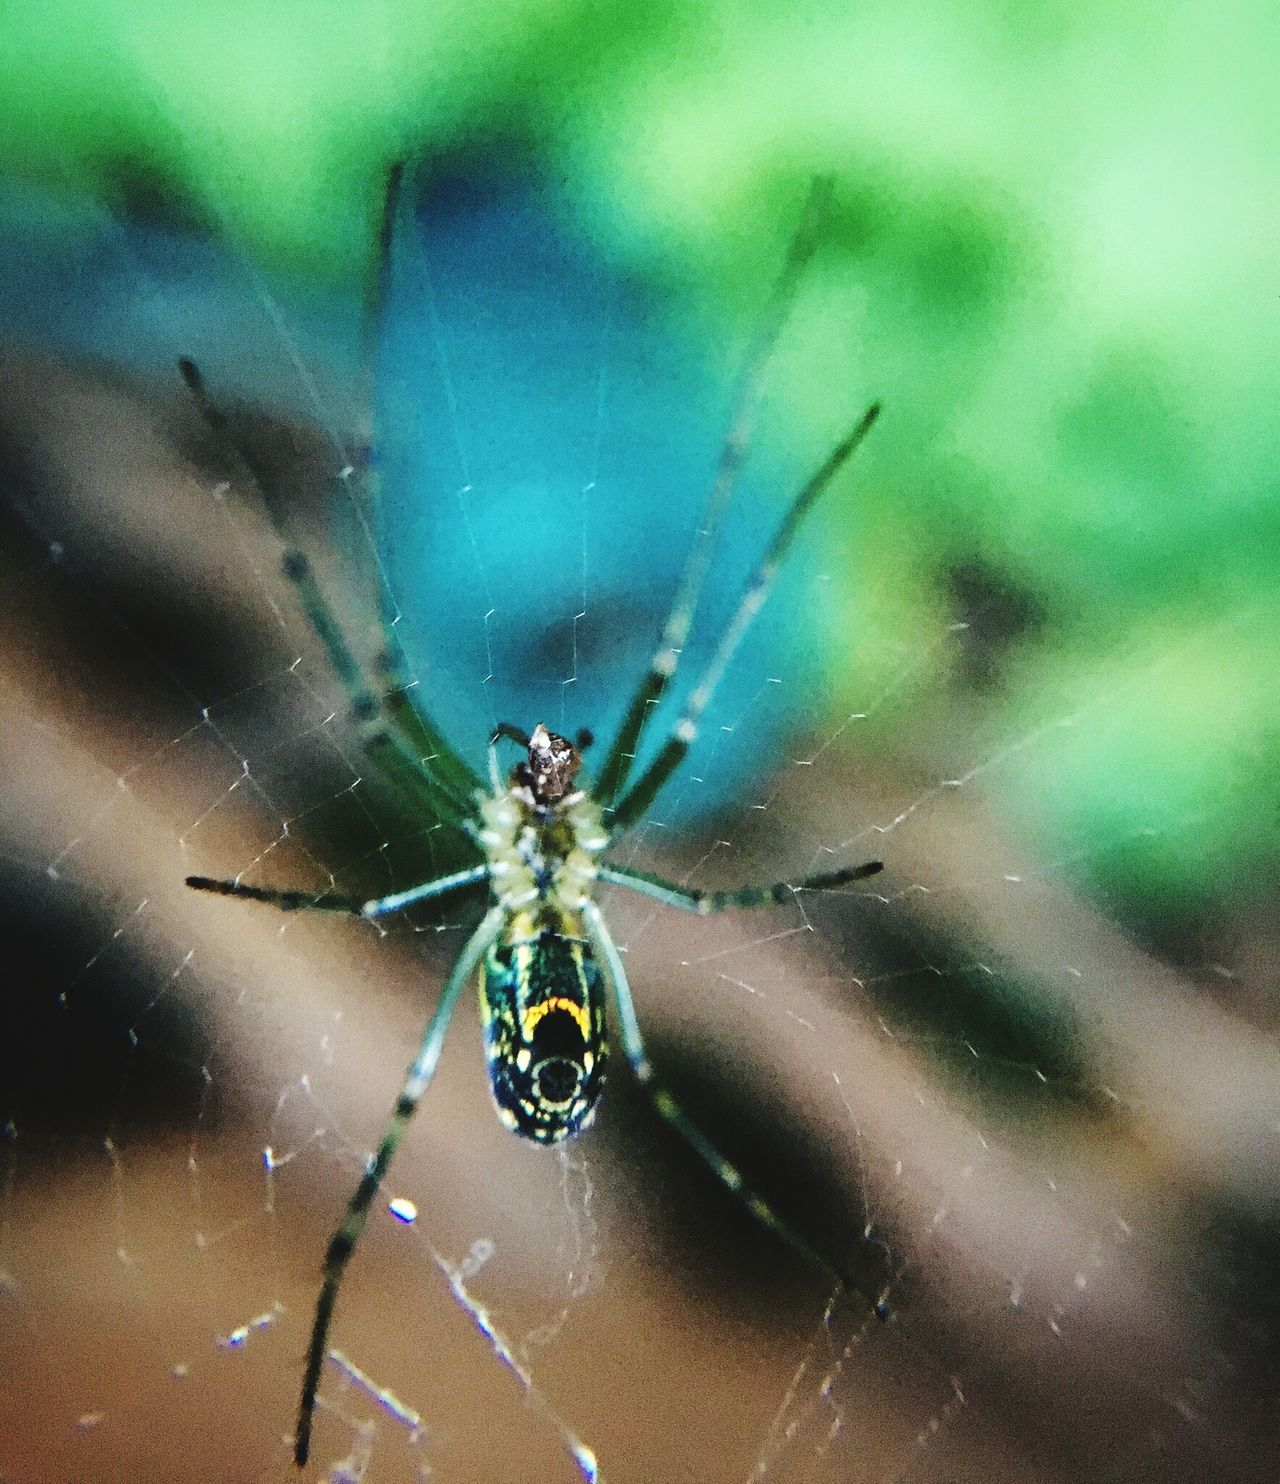 One Animal Animal Themes Spider Animals In The Wild Insect Spider Web Focus On Foreground Close-up Nature Animal Wildlife Web No People Day Outdoors Beauty In Nature Fragility Animal Leg Jumping Spider